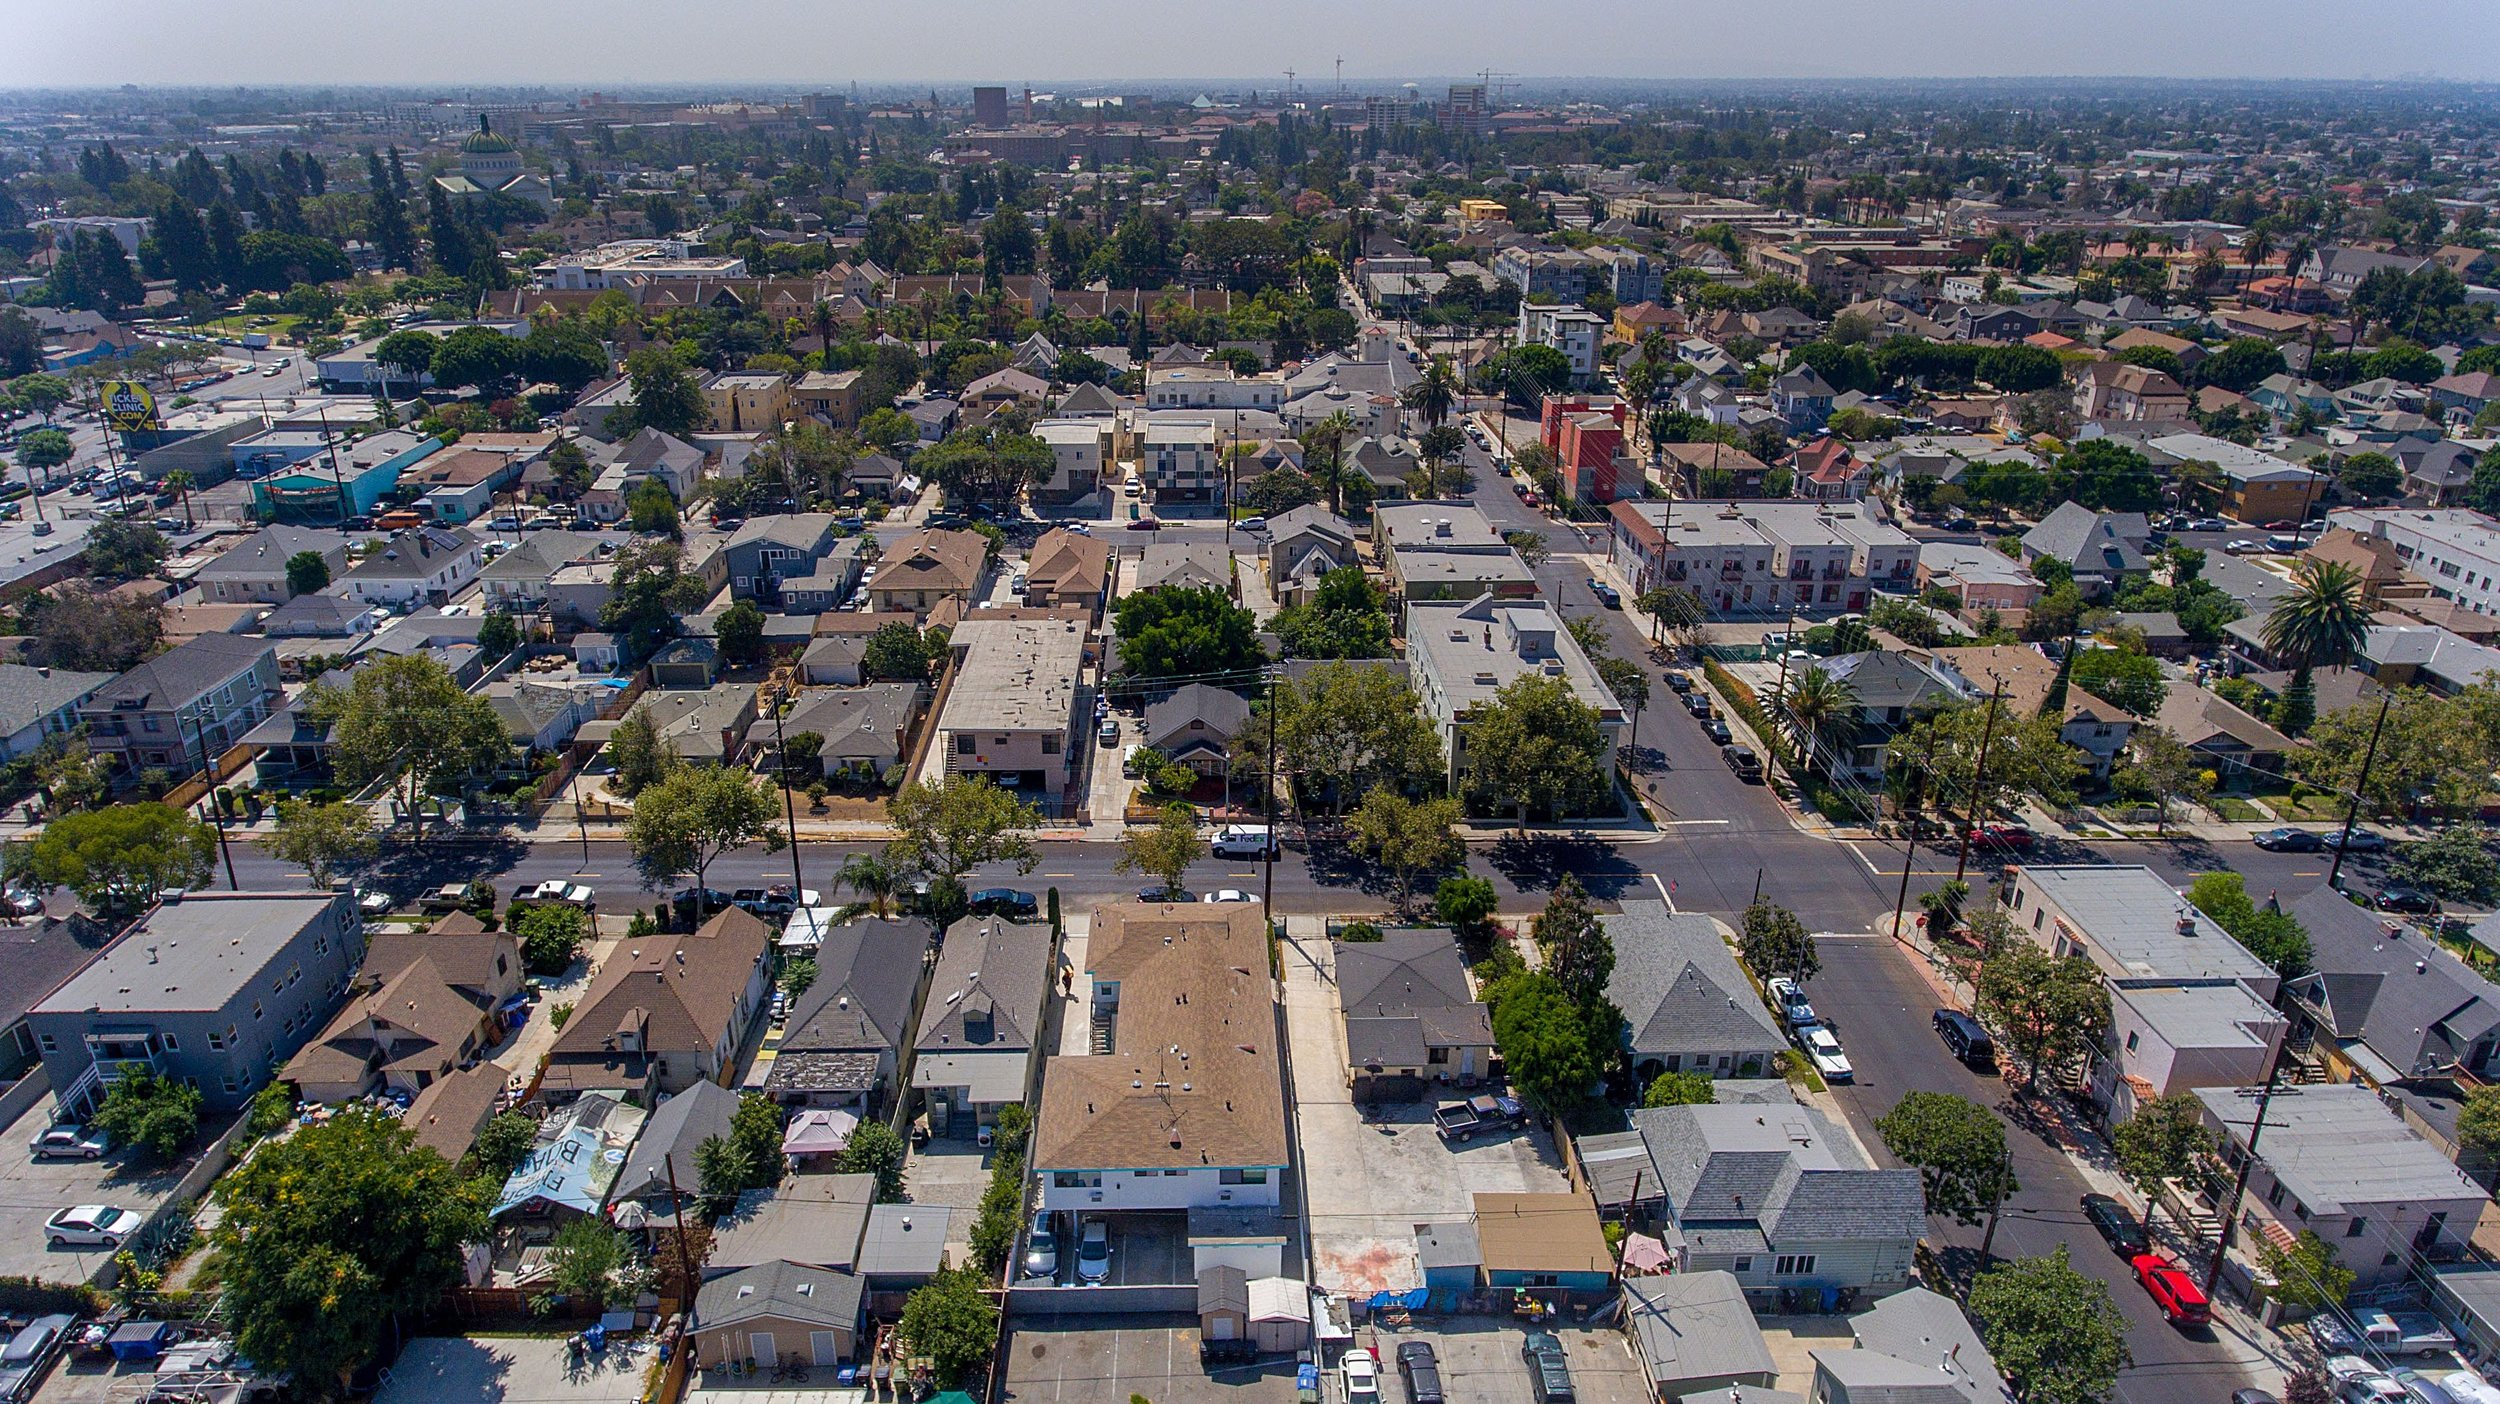 8 Reasons to Invest in Commercial Real Estate - Congratulations! If you're reading this, you're probably considering investing your money.